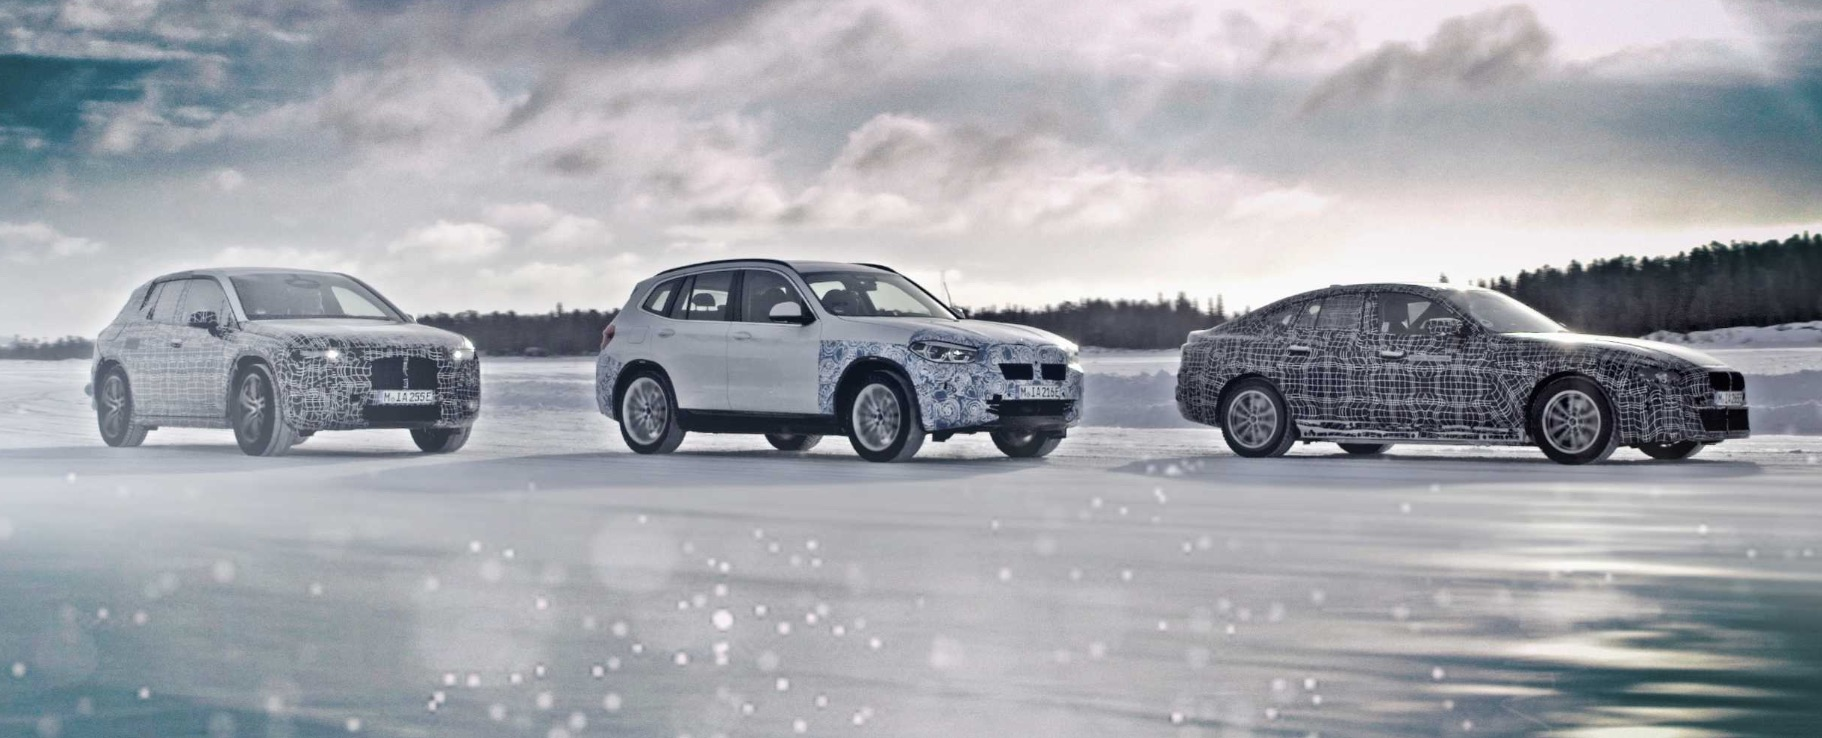 BMW reiterates commitment to e-mobility, but focuses on plug-in hybrids